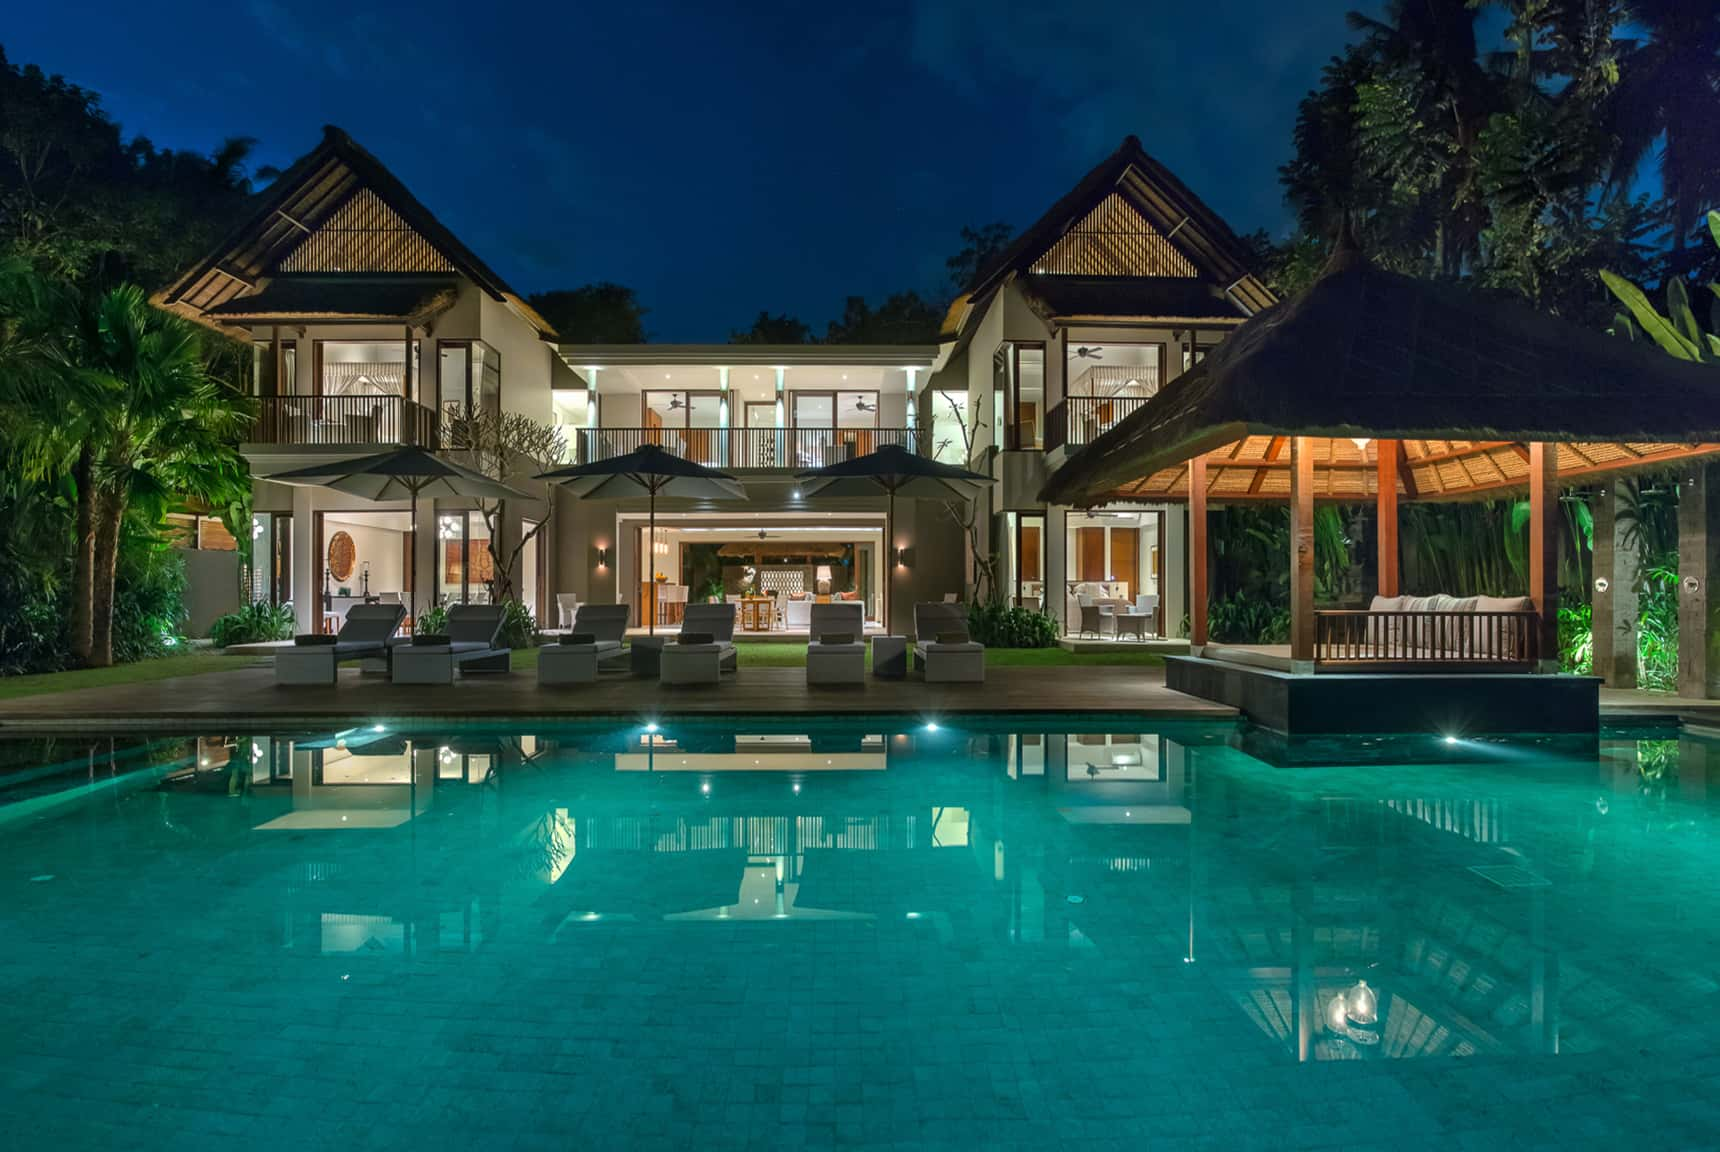 Editing digital photography of luxury hotels, resorts and villas by LuxViz: Seseh Beach Villas Bali - night time pool views